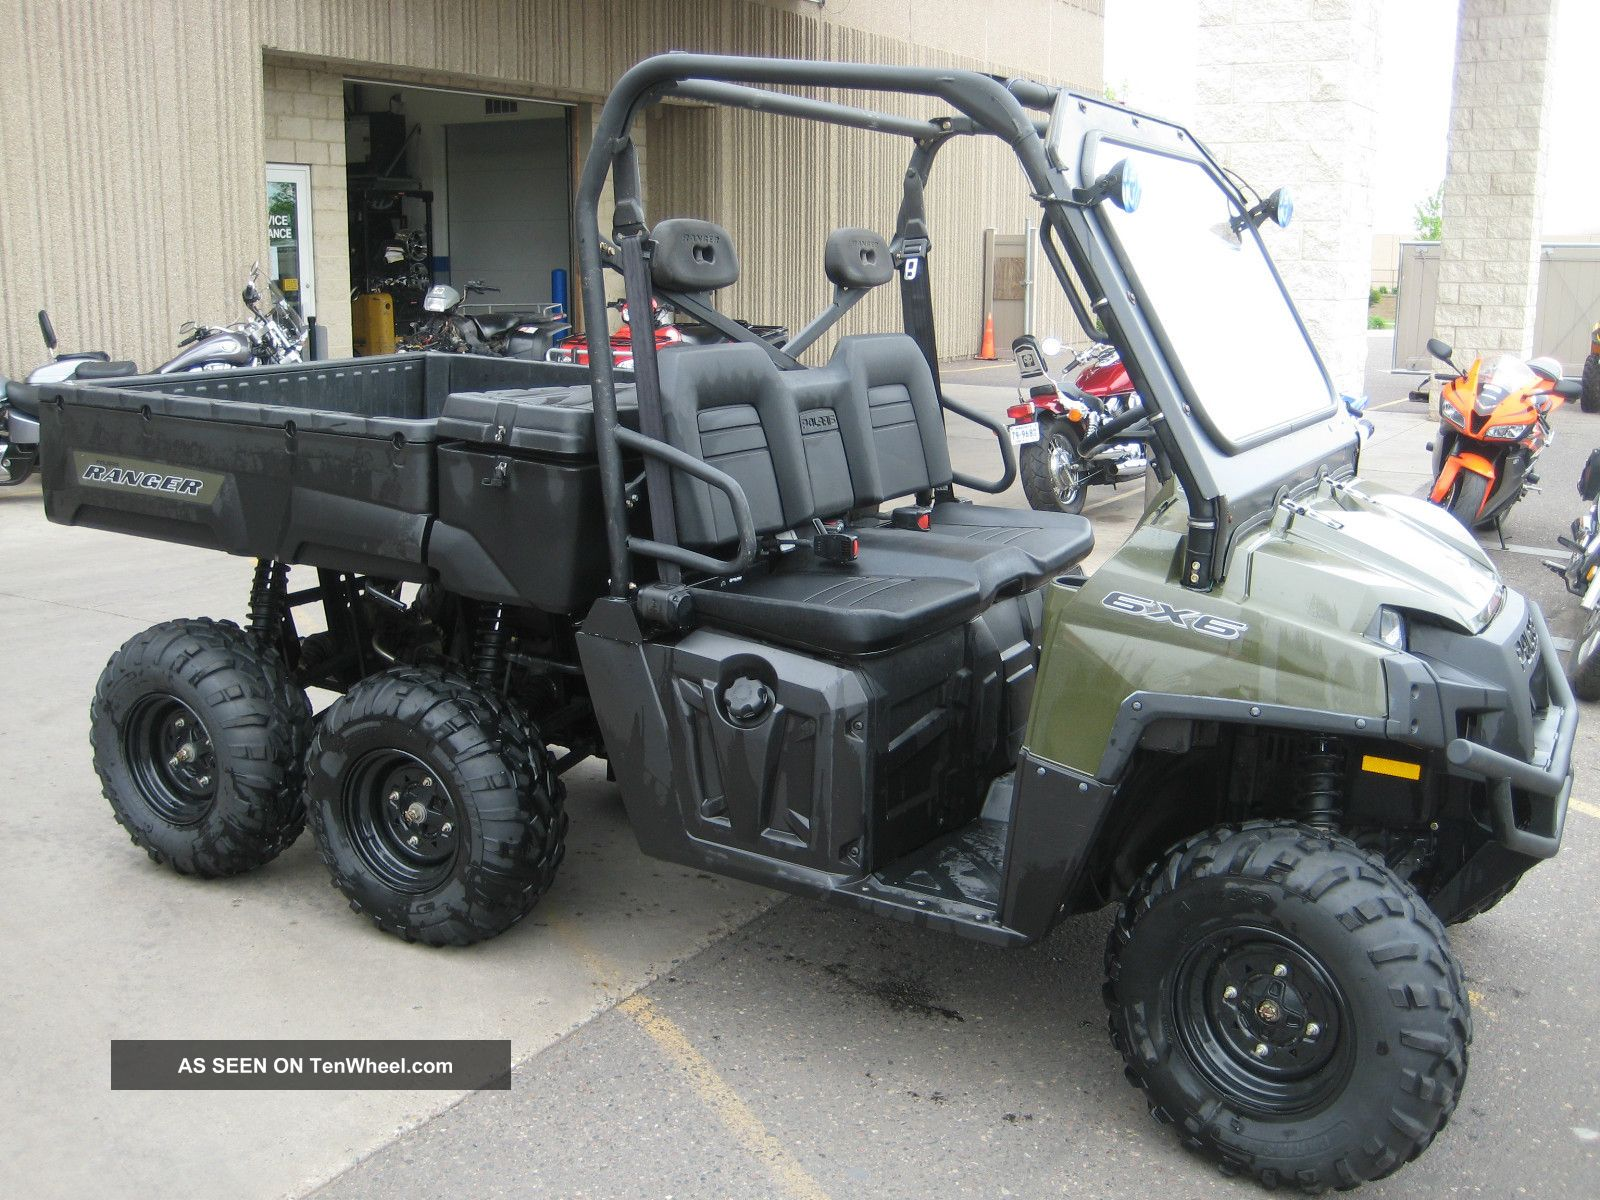 2010 Polaris Ranger 800 6x6 UTVs photo